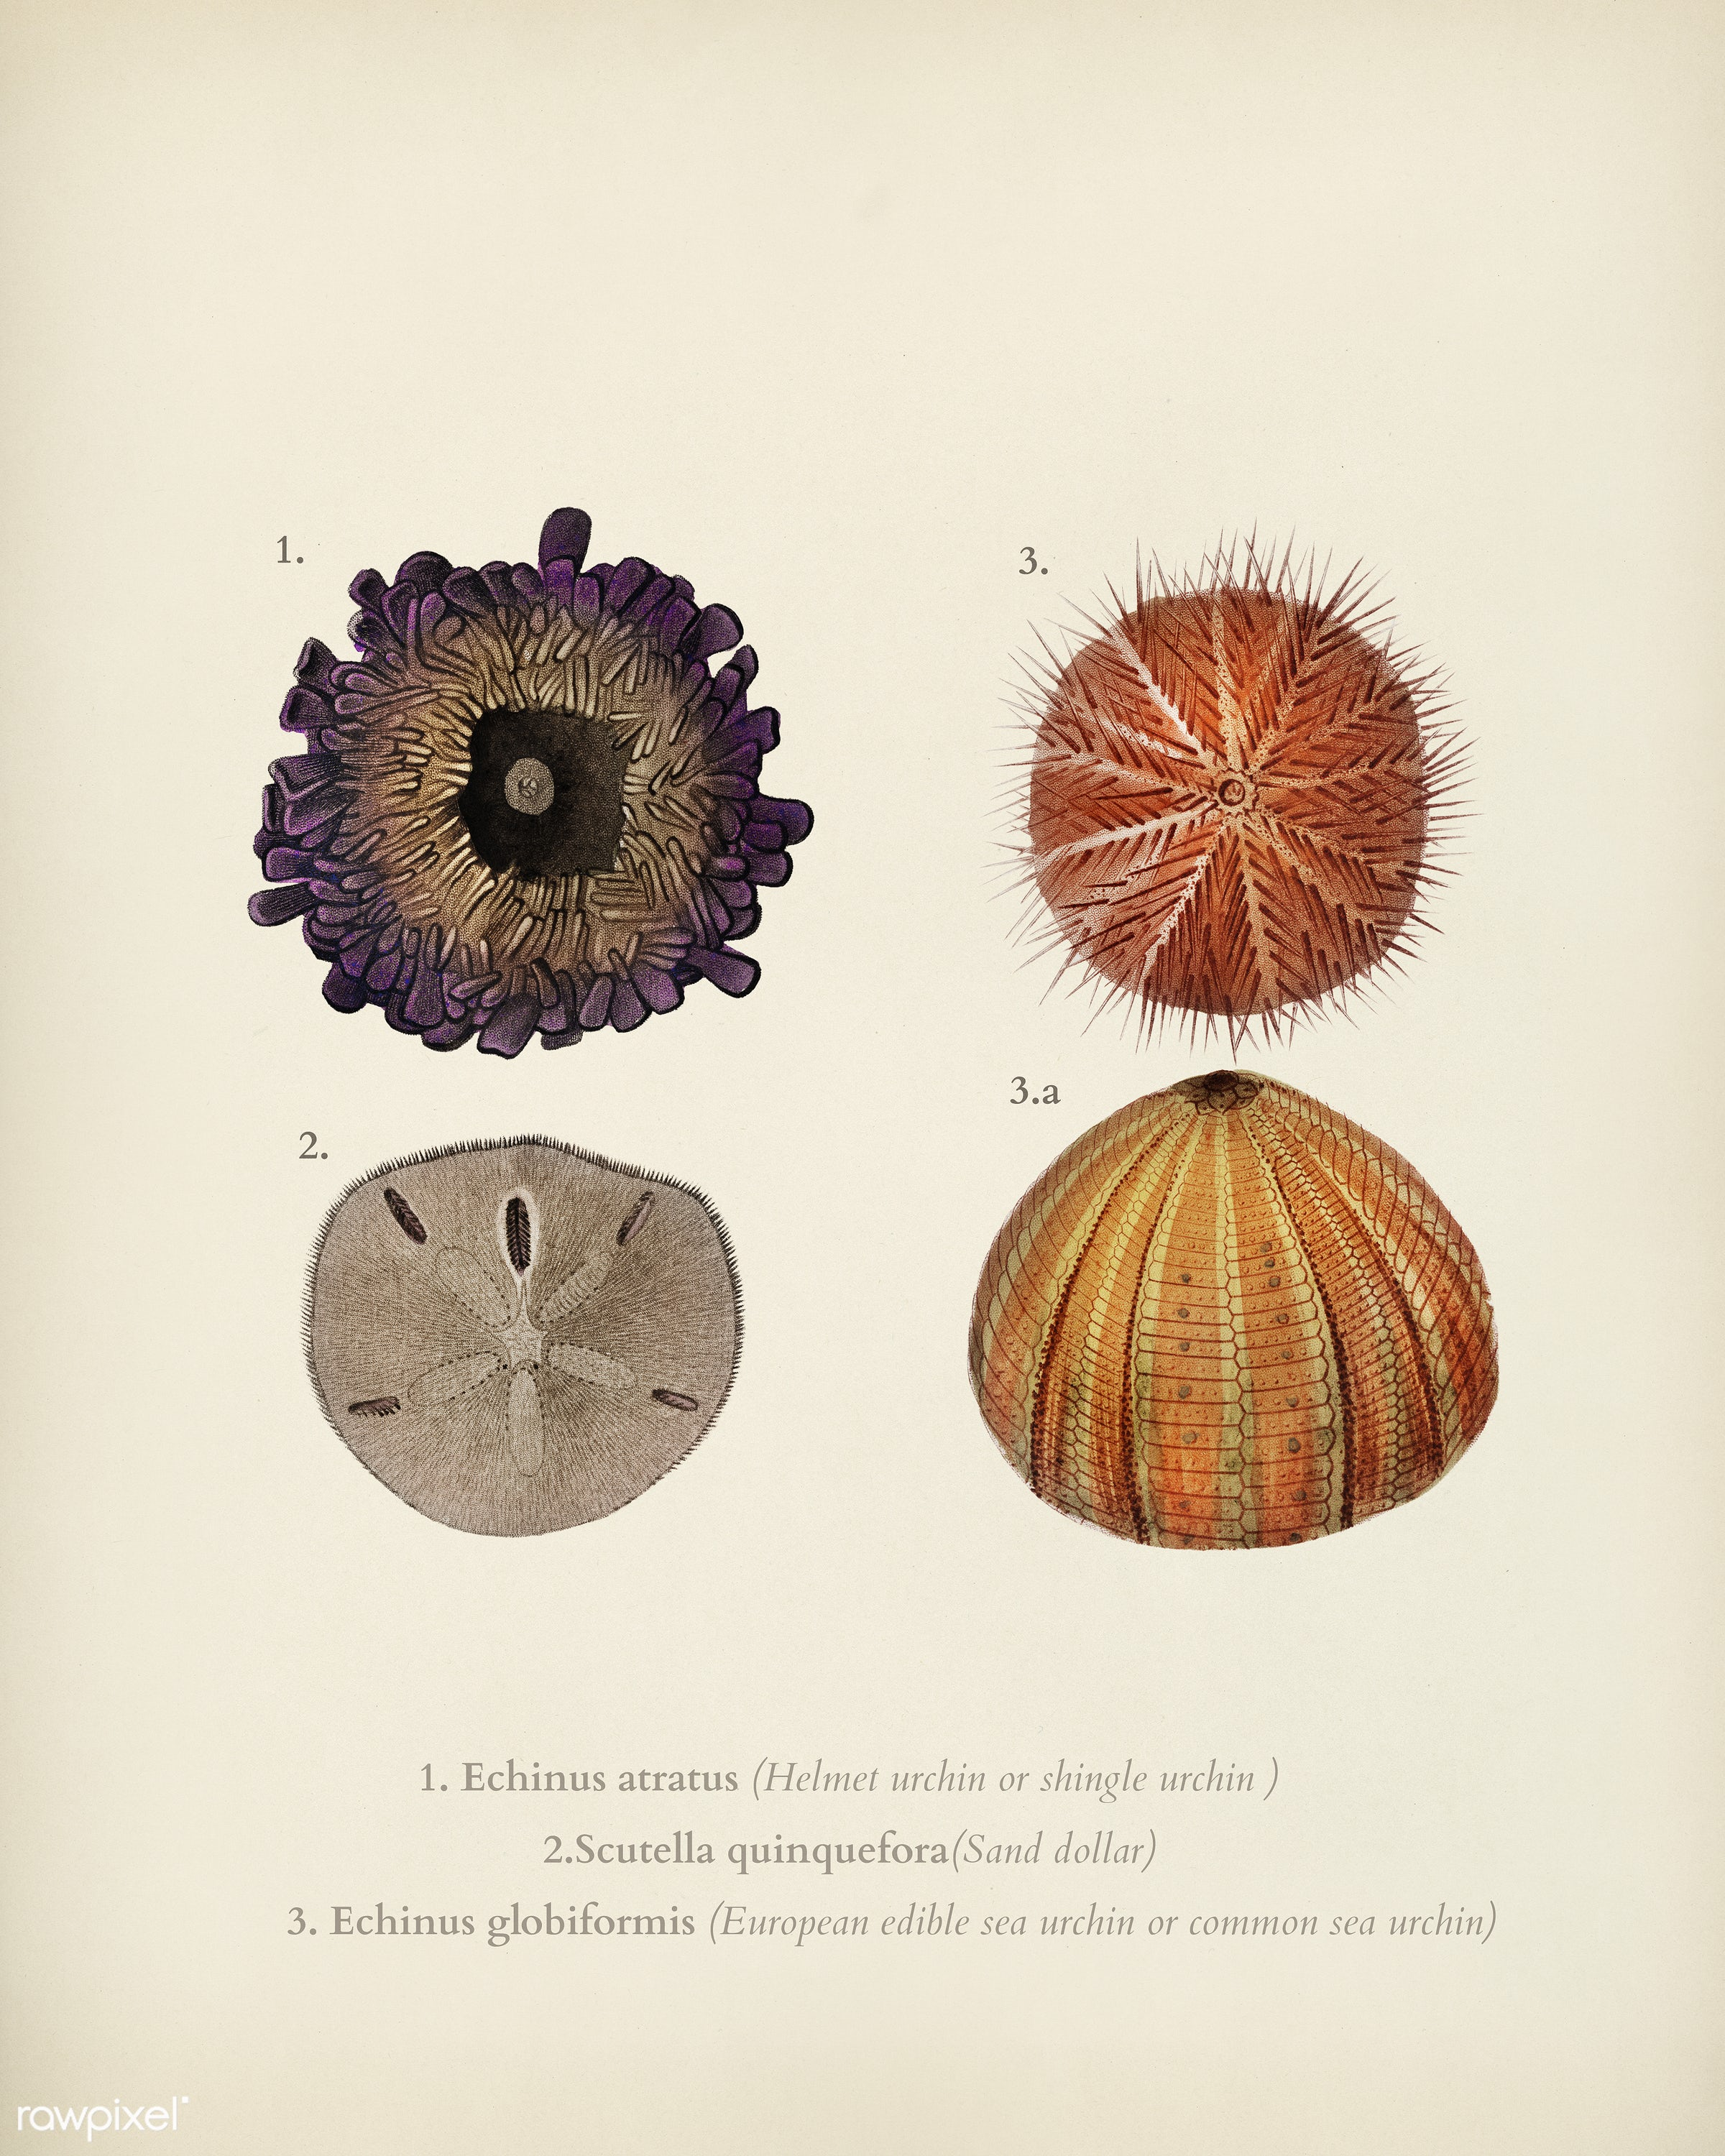 Different types of sea urcnhins illustrated by Charles Dessalines D' Orbigny (1806-1876). Digitally enhanced from our...